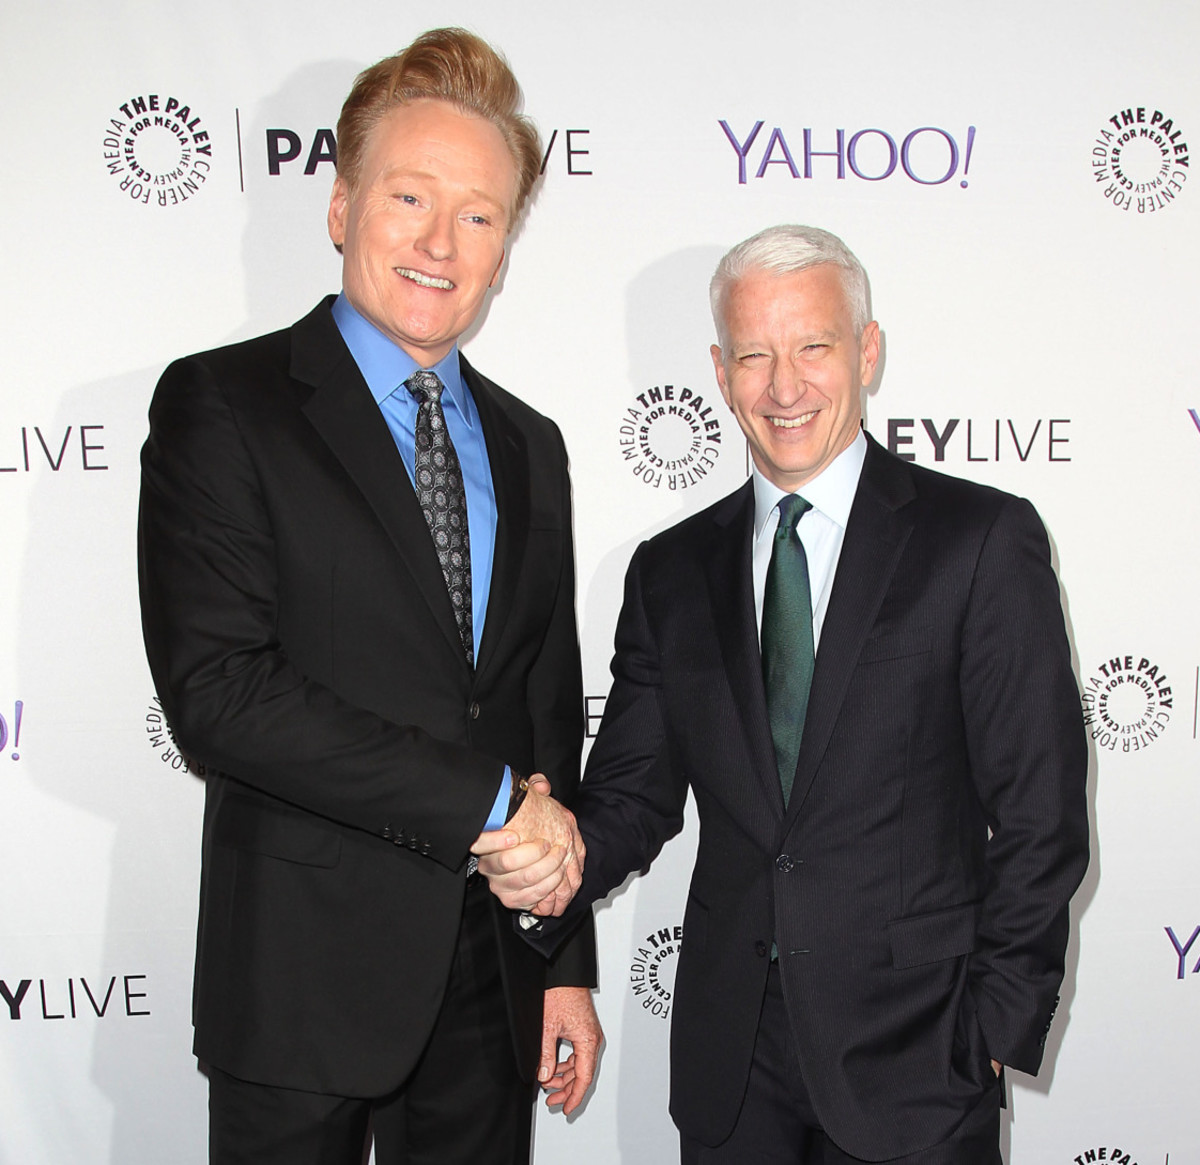 Conan O'Brien and Anderson Cooper at The Paley Center for Media last week. (Photo: Courtesy The Paley Center for Media)